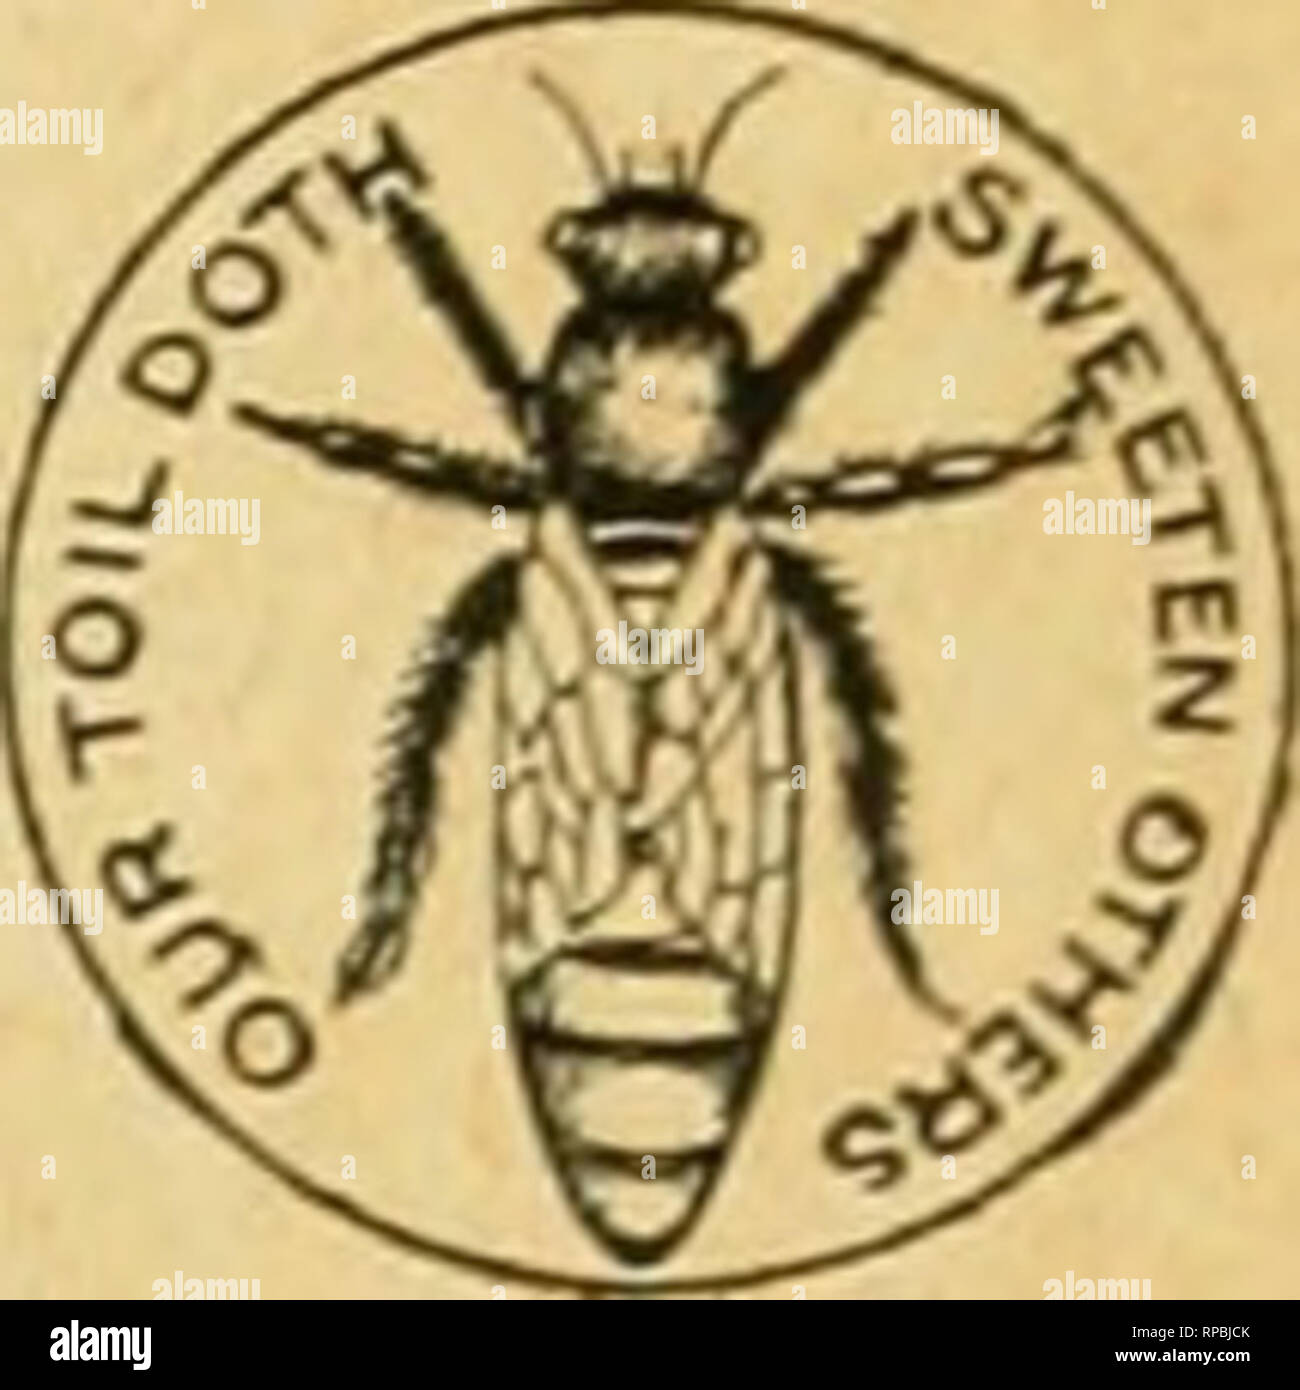 . American bee journal. Bee culture; Bees. QUEENS! Untested Queens, Italian, 60 cents. Tested, fl.OO. From honey-gathering stock. We keep in stock a full line of popular Apiarian Supplies. Catalog free. Apiaries-Glen cove, L.I. I. J. STRINGHAM, 105 U YM, NCW TODf, N. Y. Please mention. Bee Journal -when ?writing A HANDY TOOL-HOLDER! Sent by Express, for $1.50 ; or willi the Bee Journal one year—both for $2.00. Every Manufacturer, Miller, Carpenter. Cabinet Maker, Machinist. Wheelwright and Quarryman, Farmer, or any one using a grind- stone, should have one of these Tool-Holders. One boy can  - Stock Image